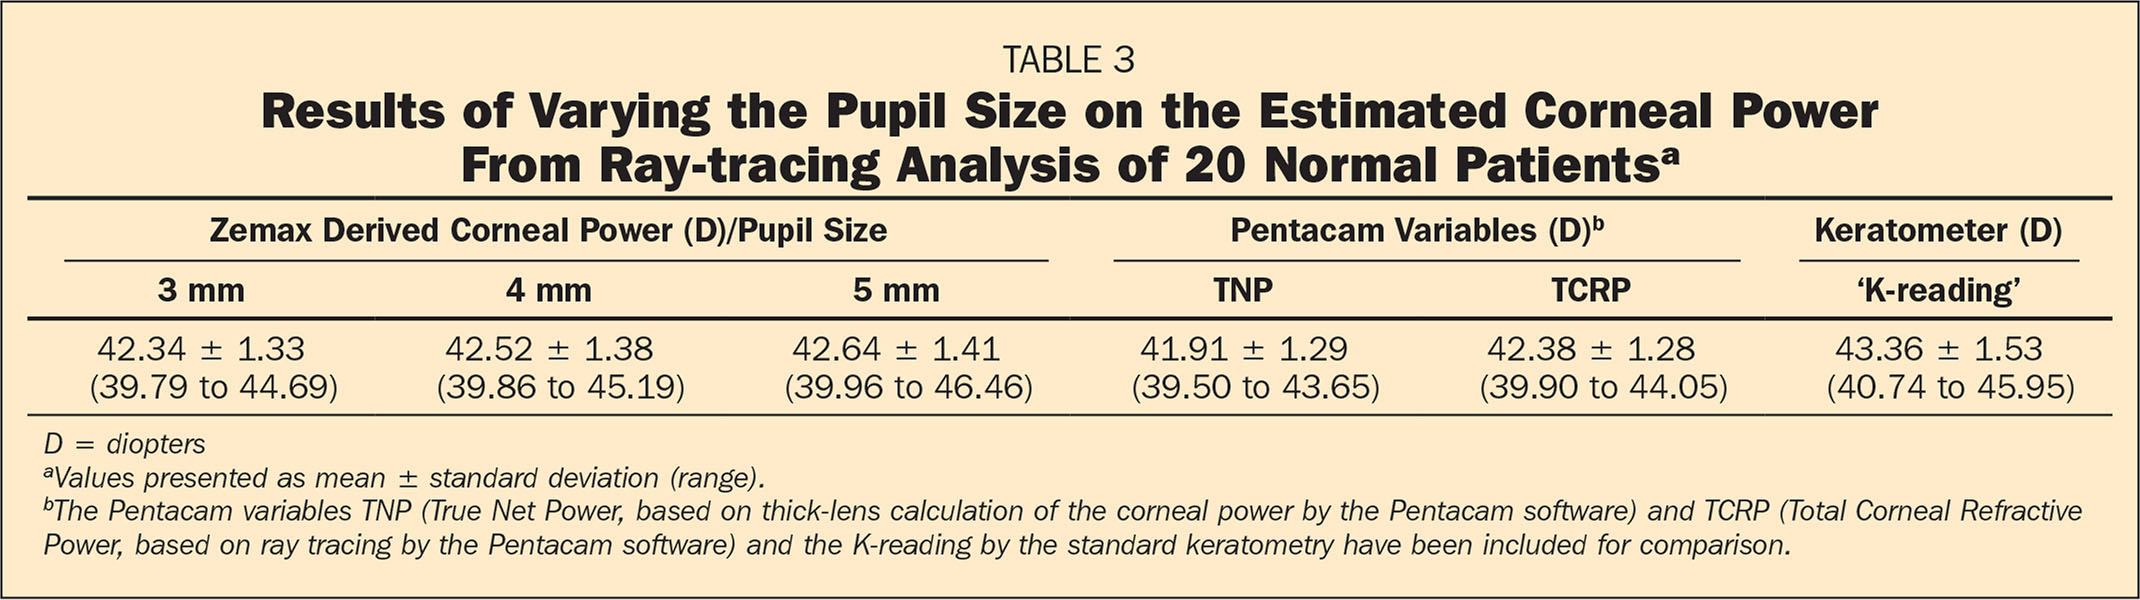 Results of Varying the Pupil Size on the Estimated Corneal Power From Ray-tracing Analysis of 20 Normal Patientsa